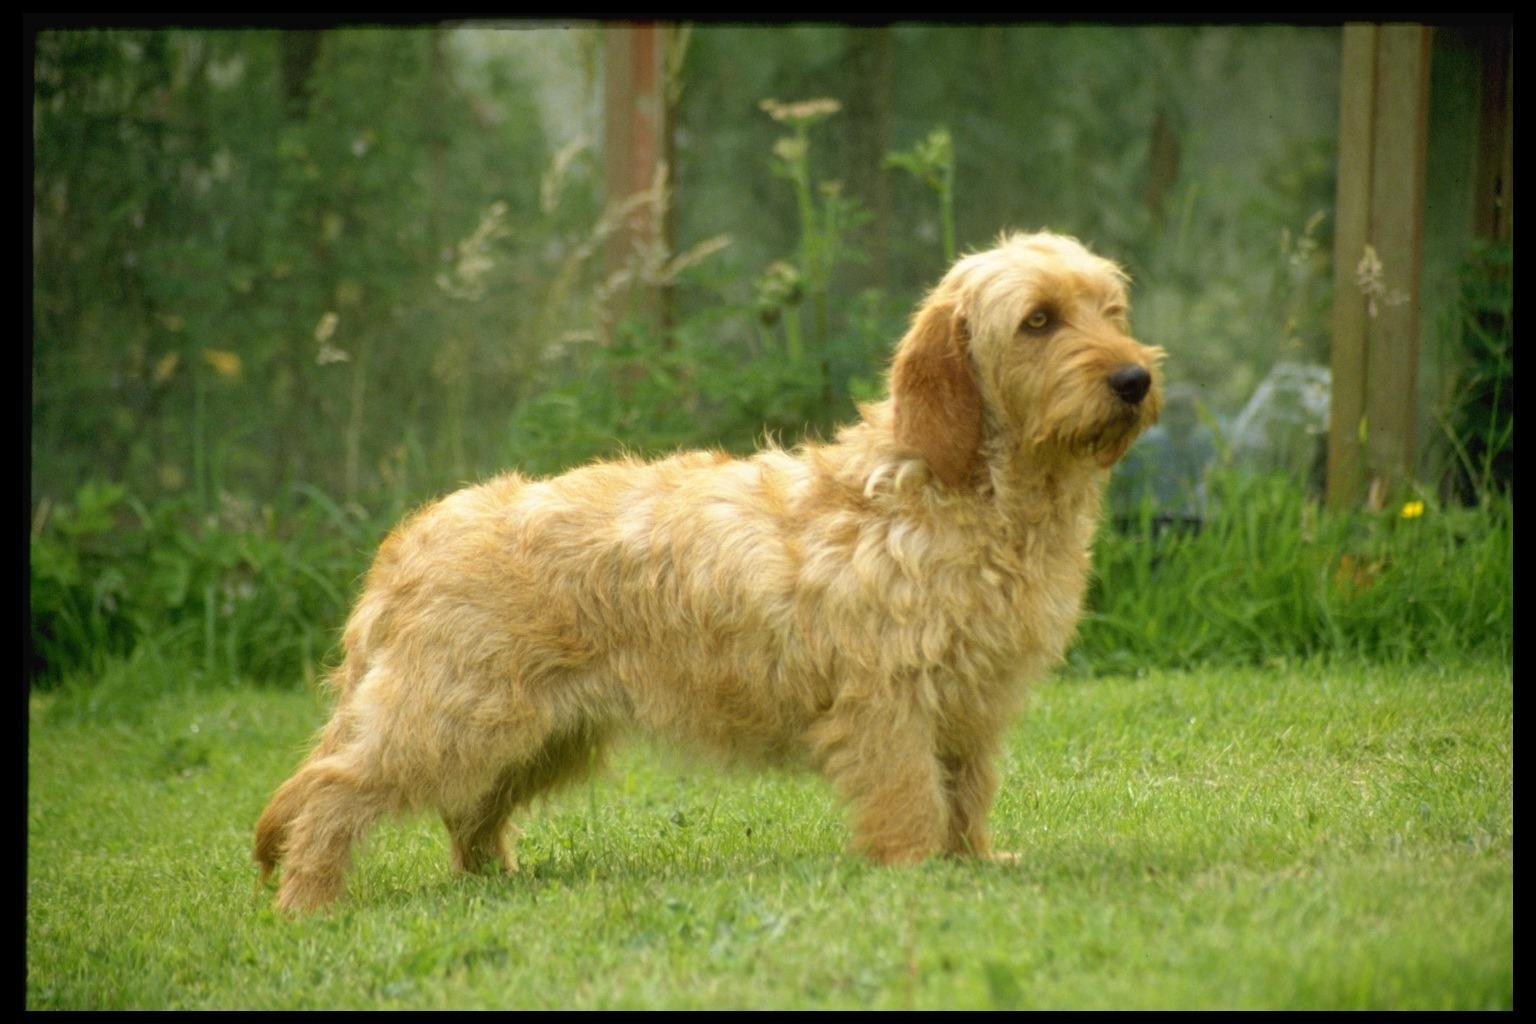 griffon-fauve-de-bretagne-dog-on-the-grass-photo